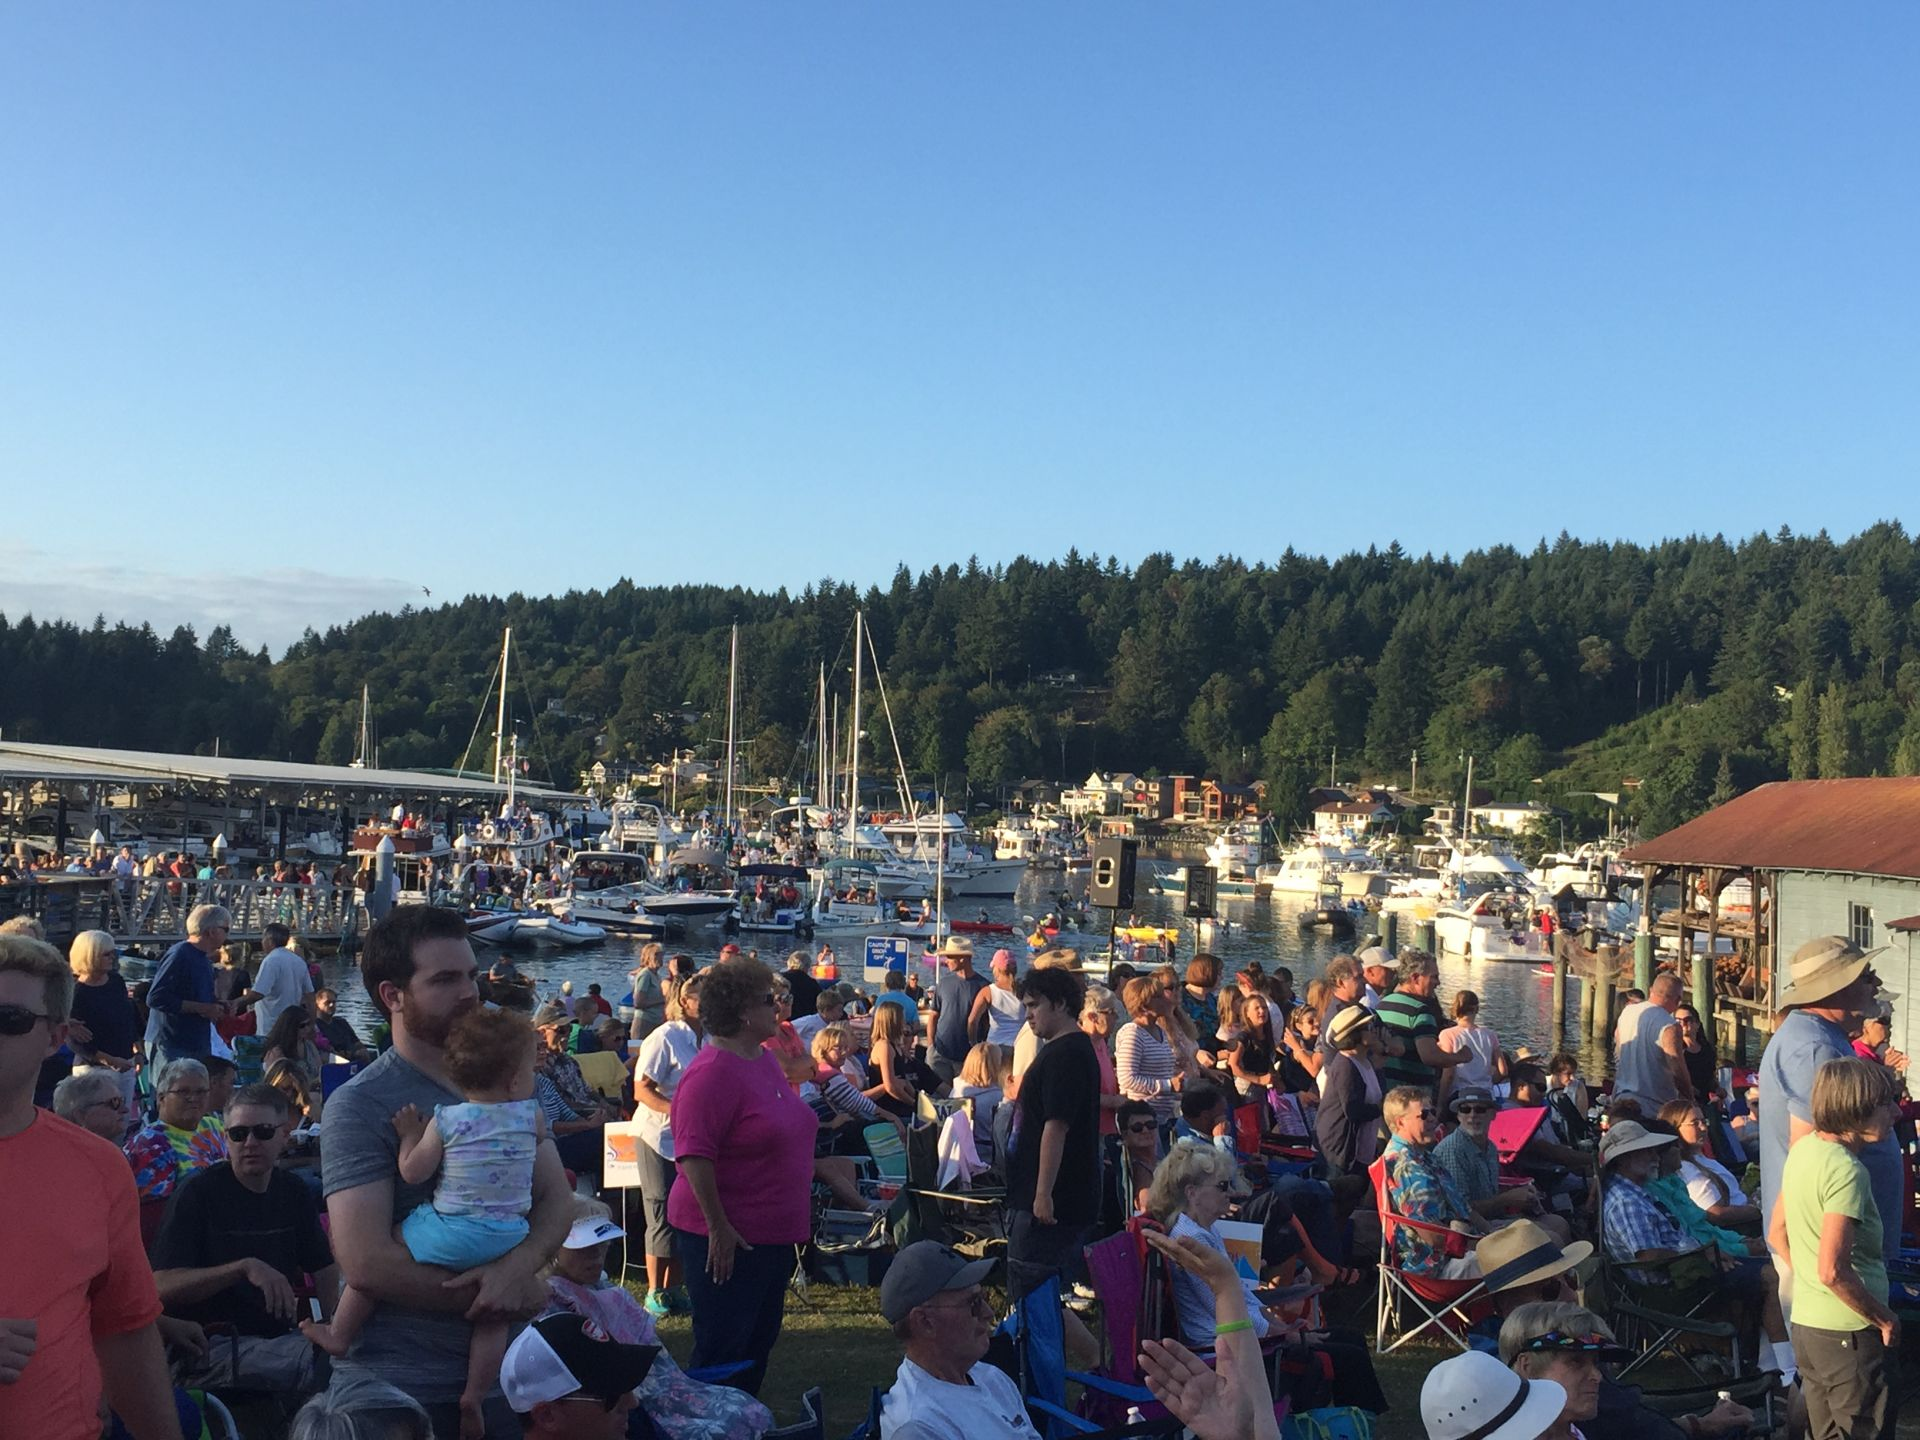 Summertime Waterfront Concerts in Gig Harbor